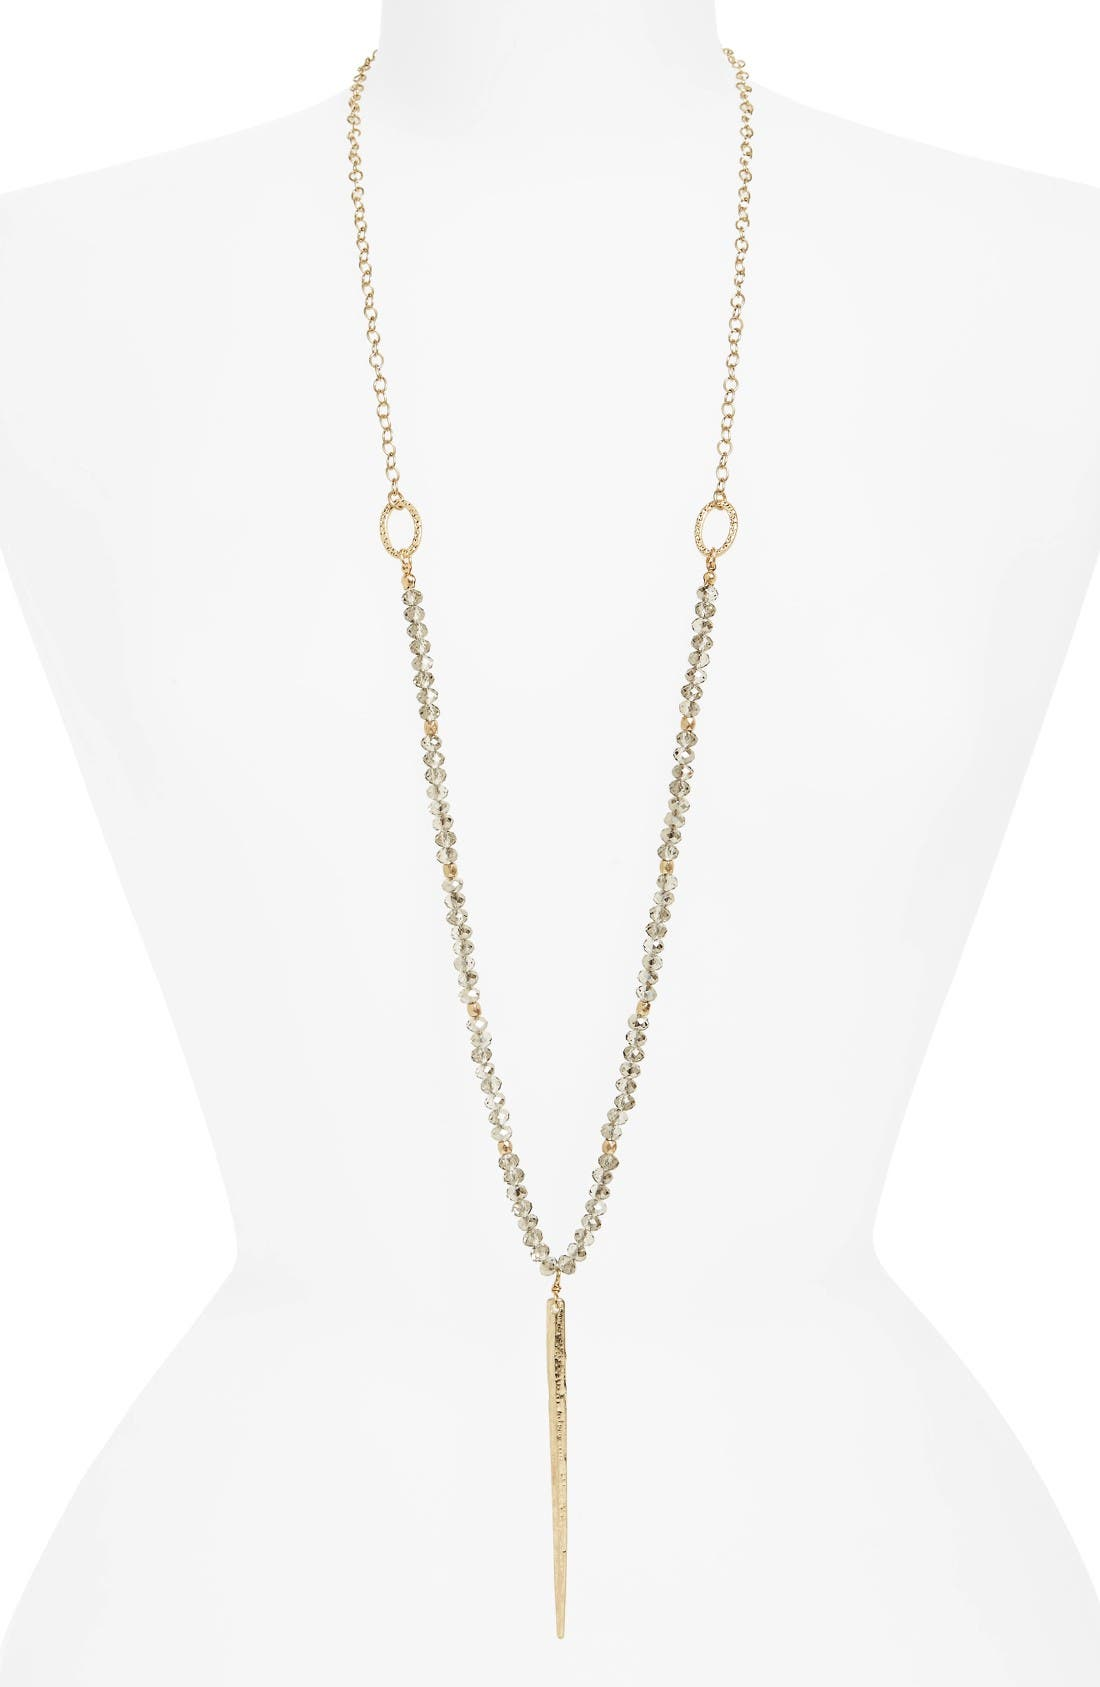 Crystal & Spike Necklace,                         Main,                         color, Worn Gold/ Black Diamond